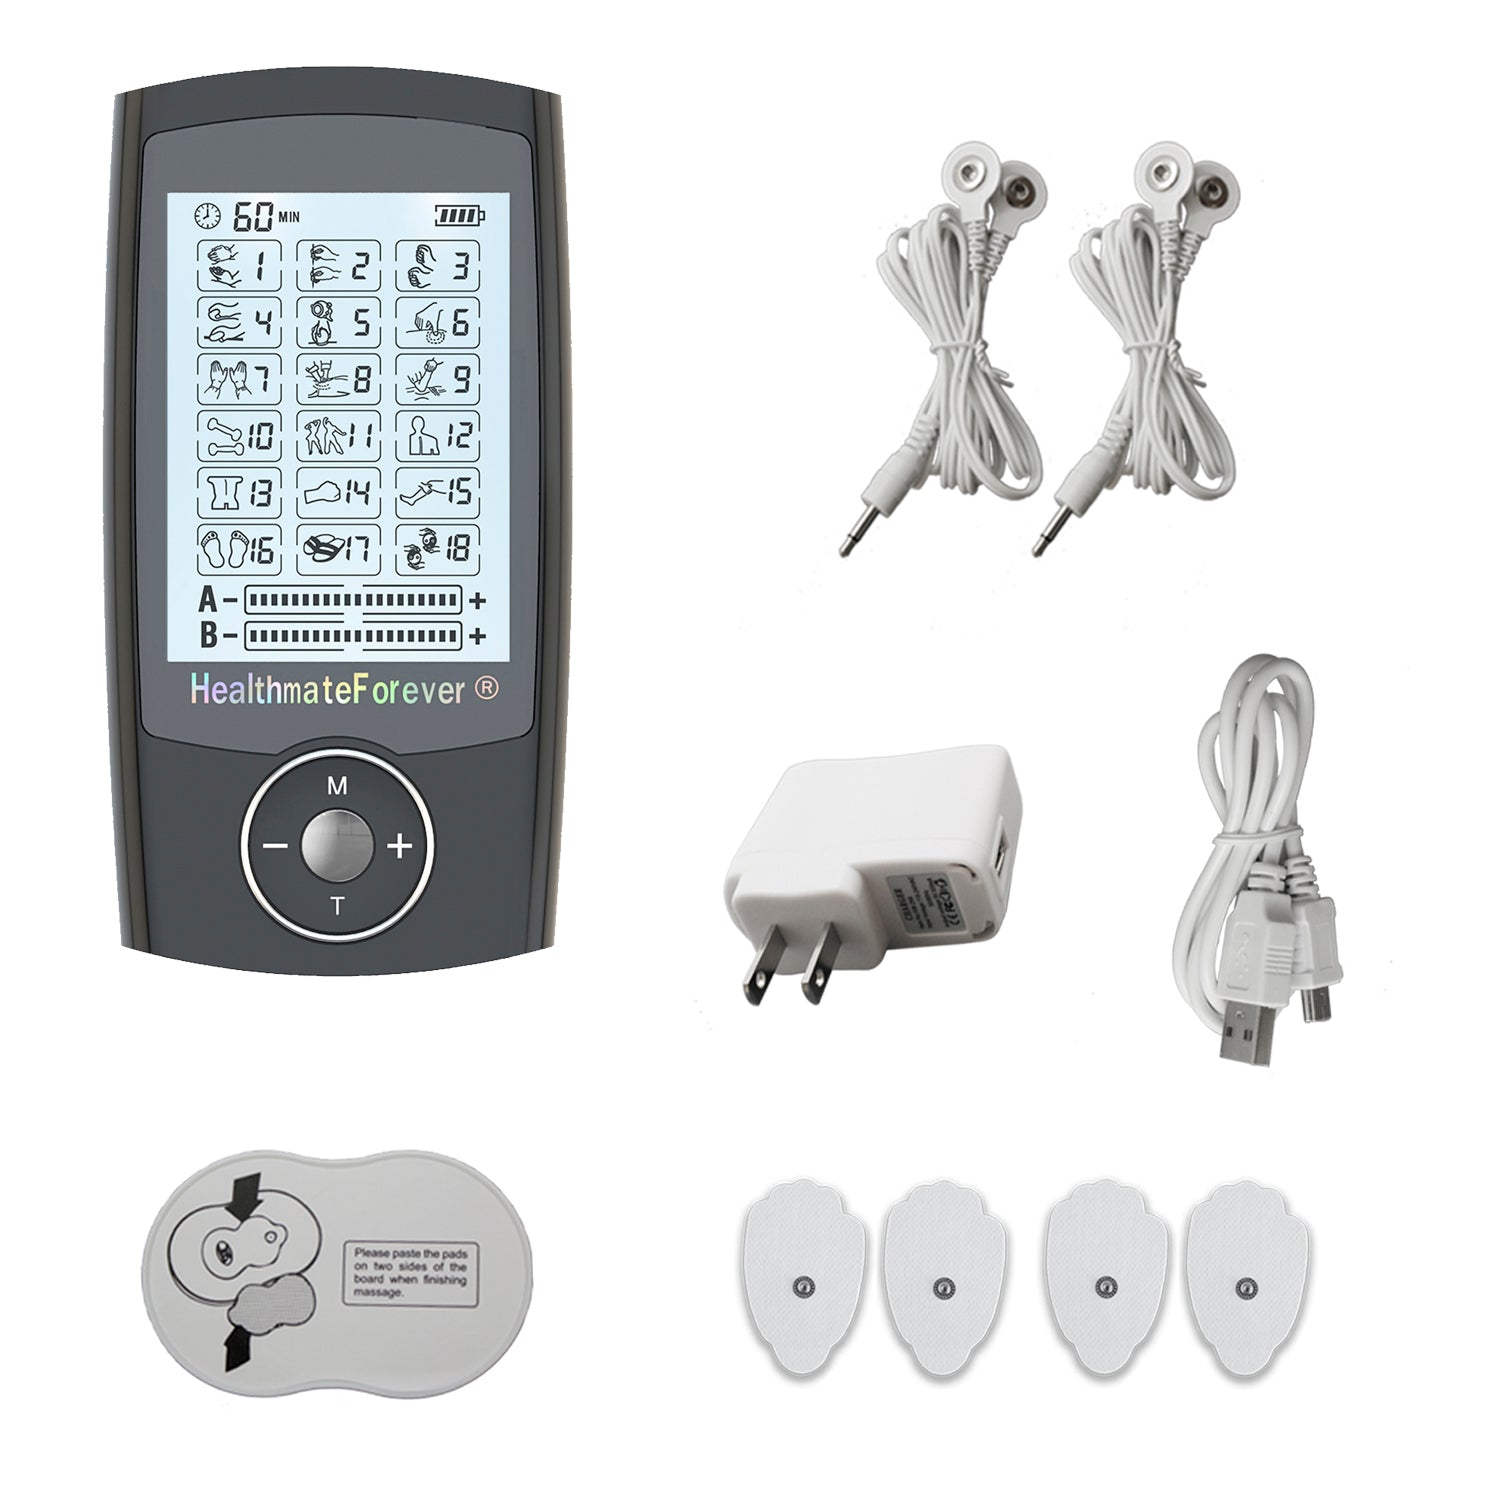 PRO18AB Pain Relief TENS Unit & Muscle Stimulator - 2 Year Warranty - HealthmateForever.com